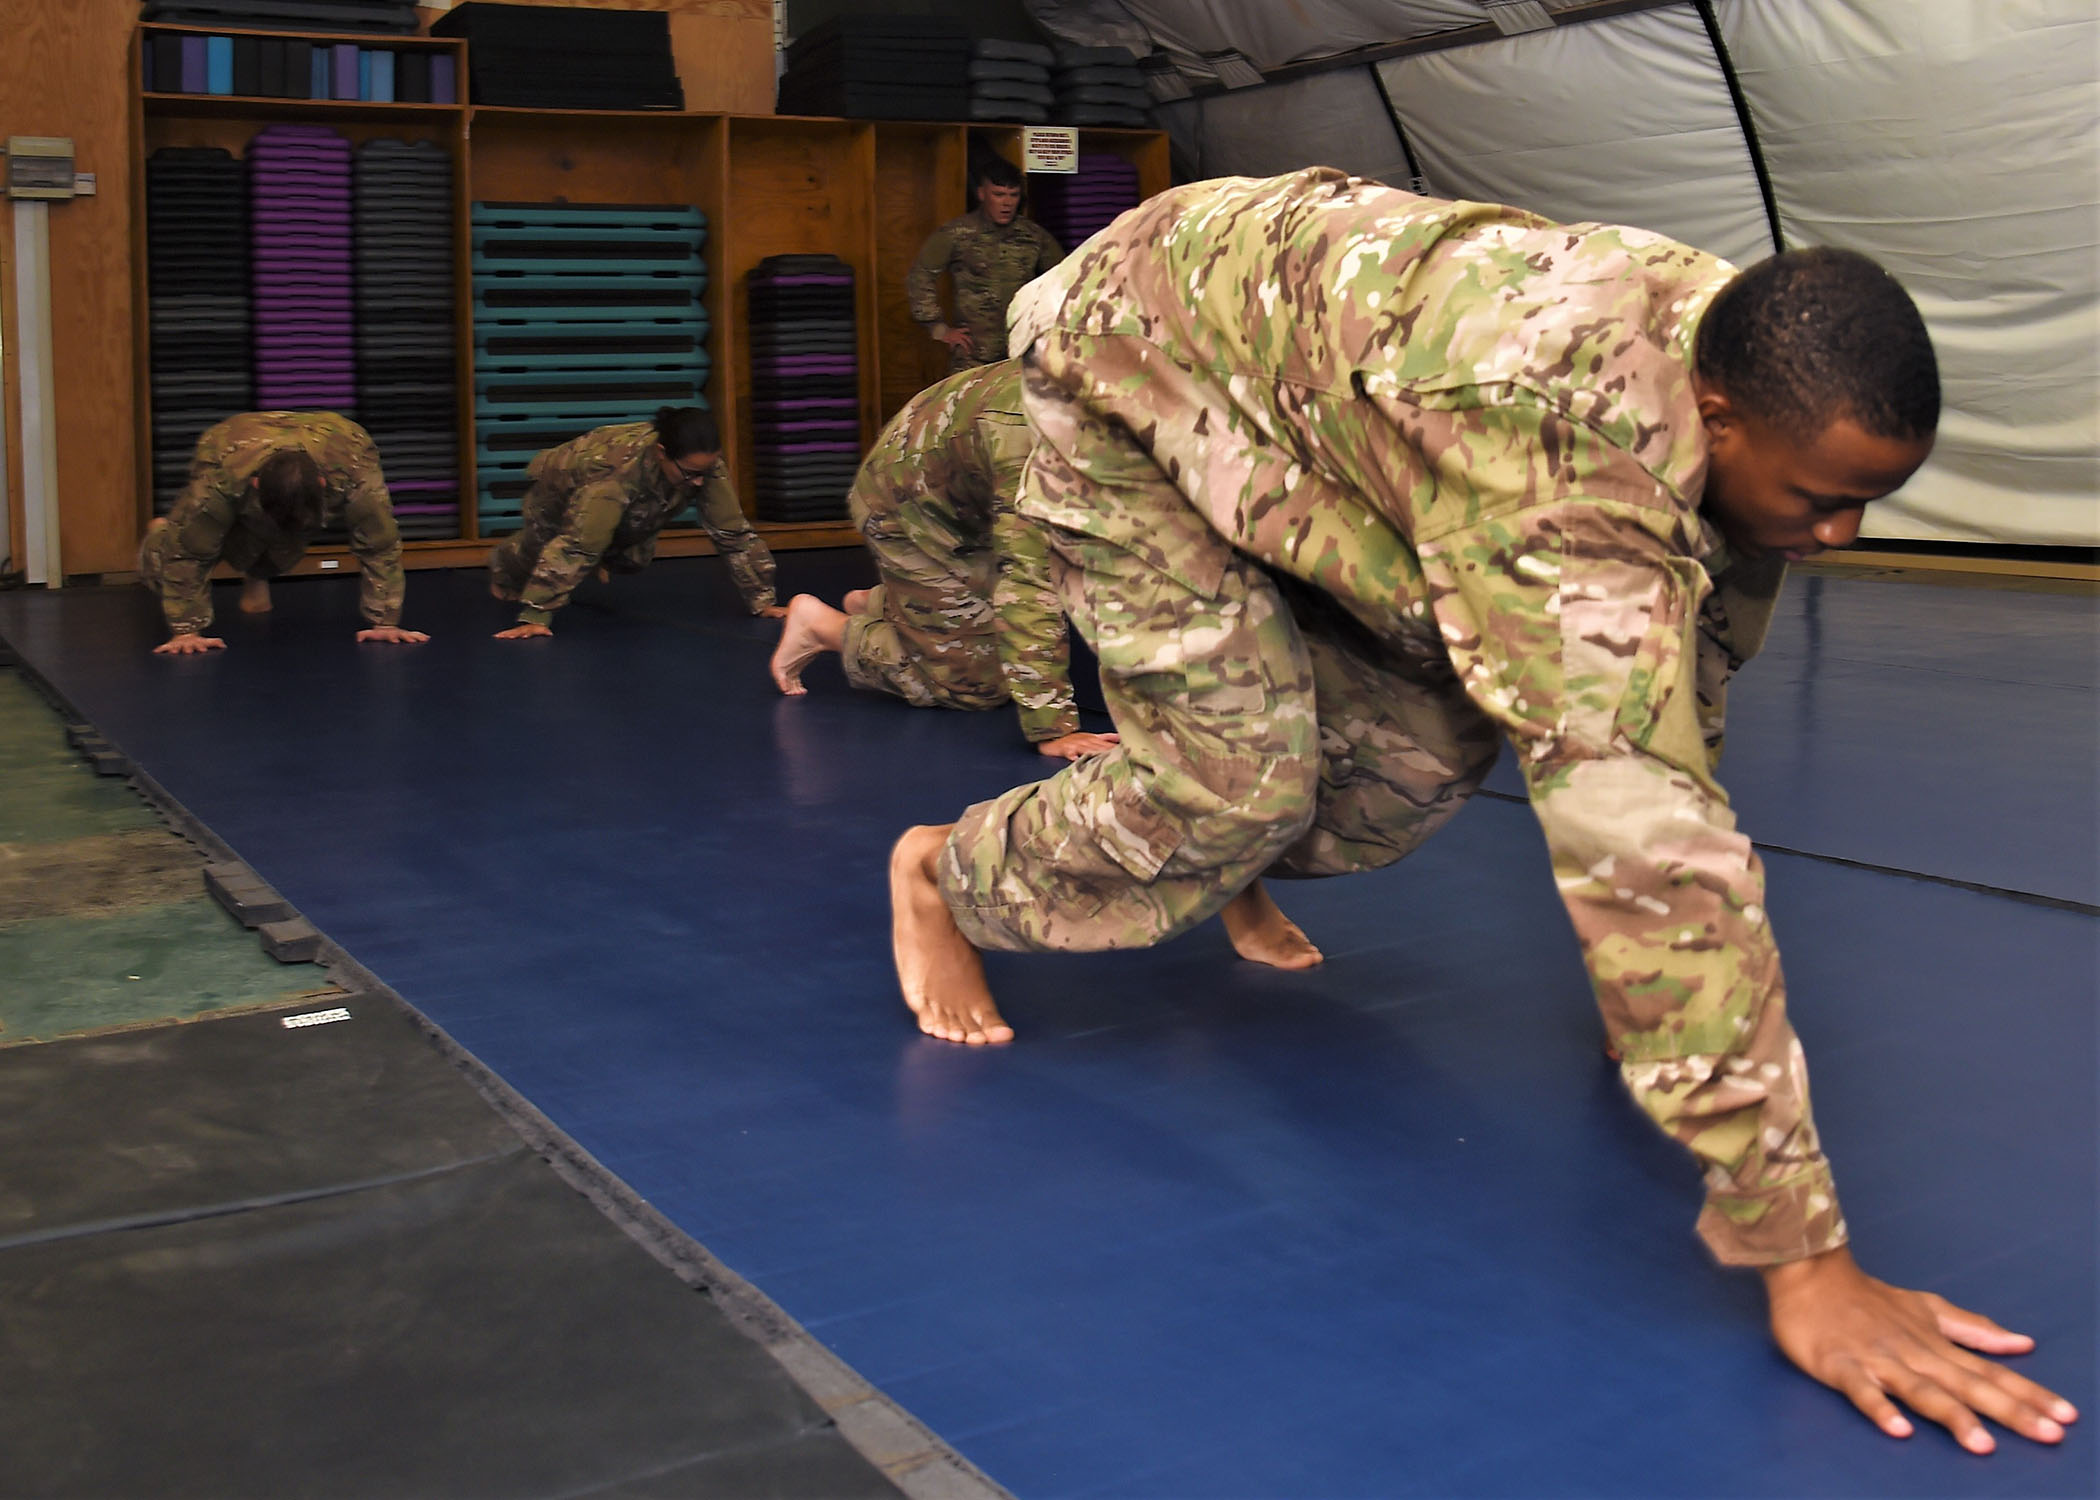 Members of the 1st Battalion, 153rd Infantry Regiment deployed with the Combined Joint Task Force - Horn of Africa conducted a class for combatives instruction at Camp Lemonnier, Djibouti, June 26 - 30, 2017. The weeklong course will train approximately 30 Soldiers to be instructors for first-level hand-to-hand combat. (U.S. Air National Guard photo by Tech. Sgt. Andria Allmond)